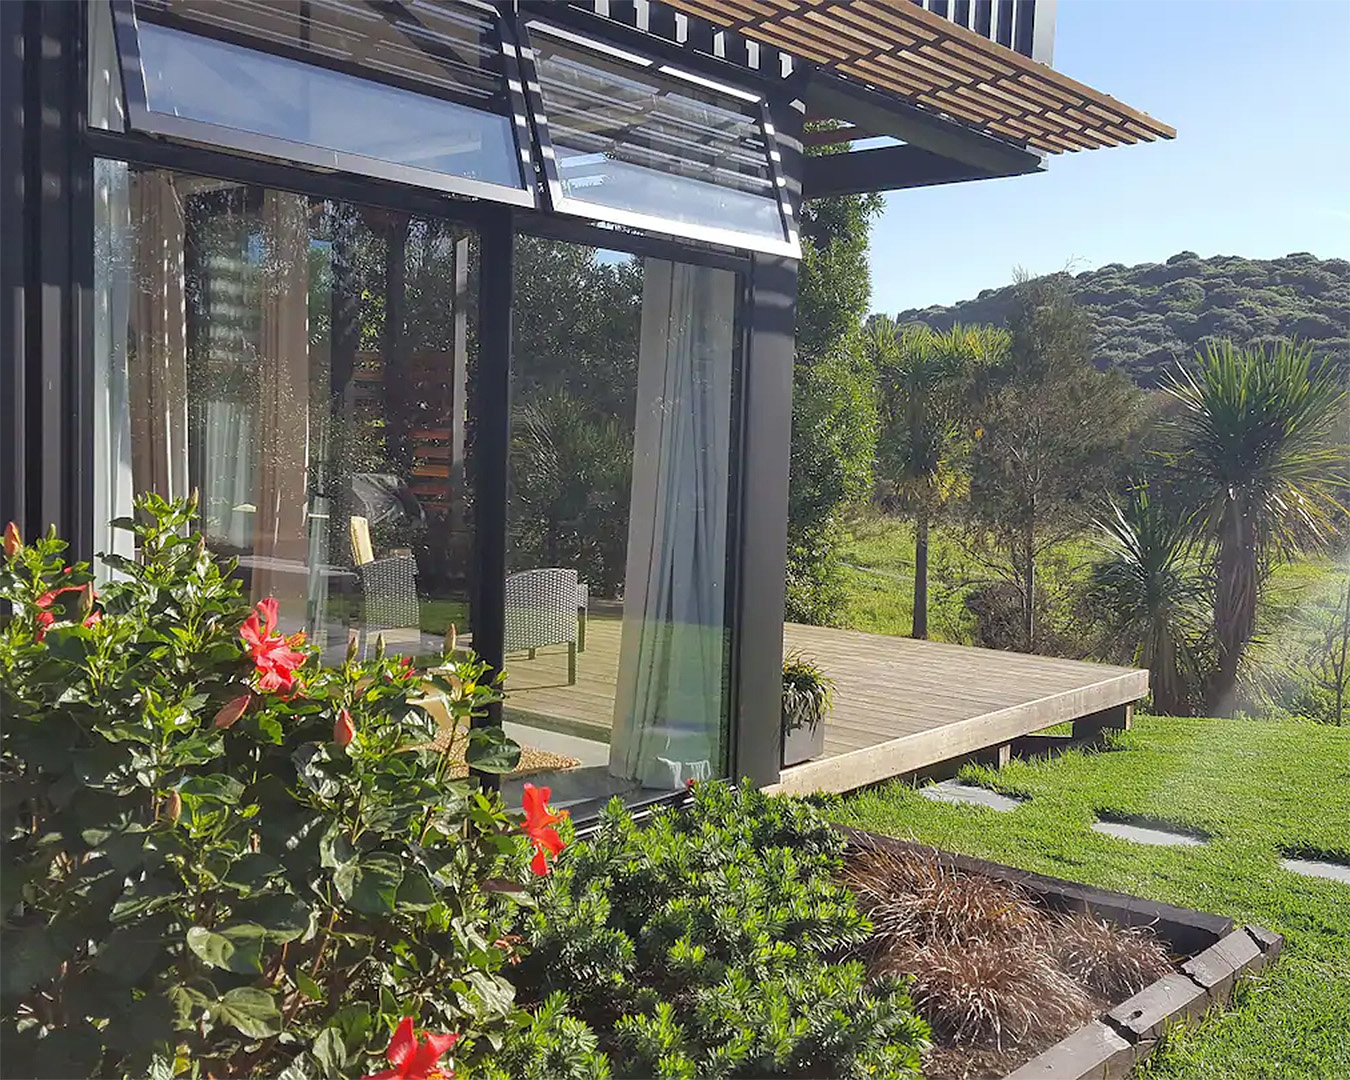 The outside of the Kauri Tree Retreat showing a building looking onto a lovely garden.